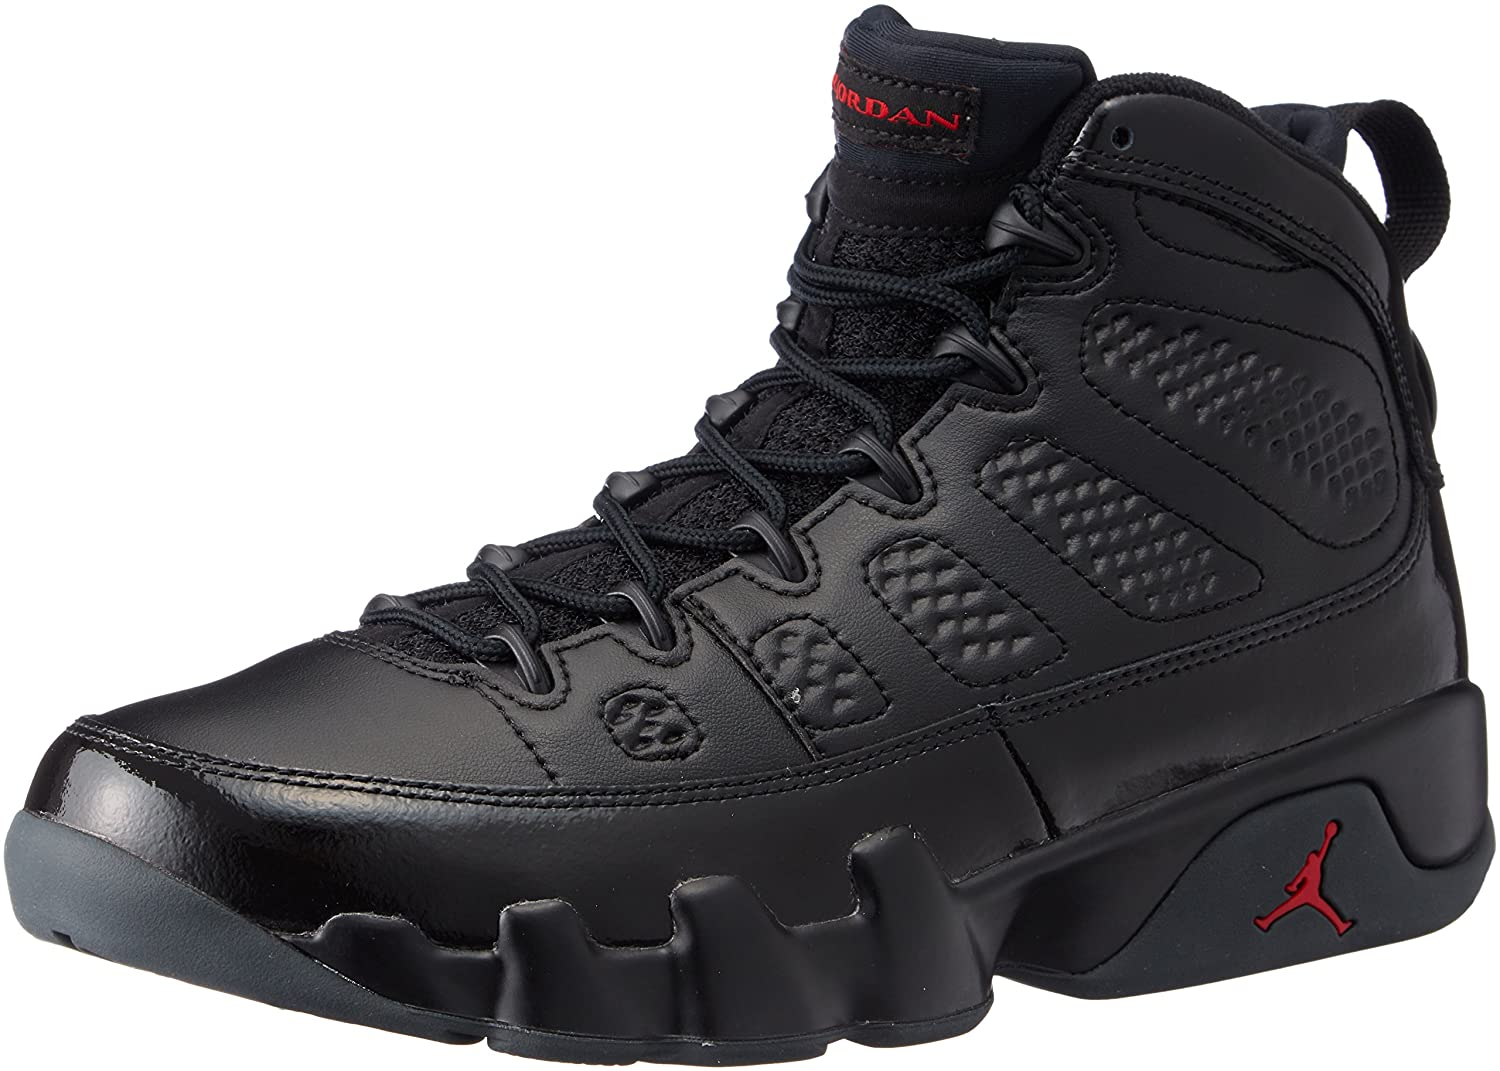 separation shoes c63c2 a4741 Amazon.com   Jordan Air 9 Retro Men s Basketball Shoes Black University Red  302370-014   Fashion Sneakers